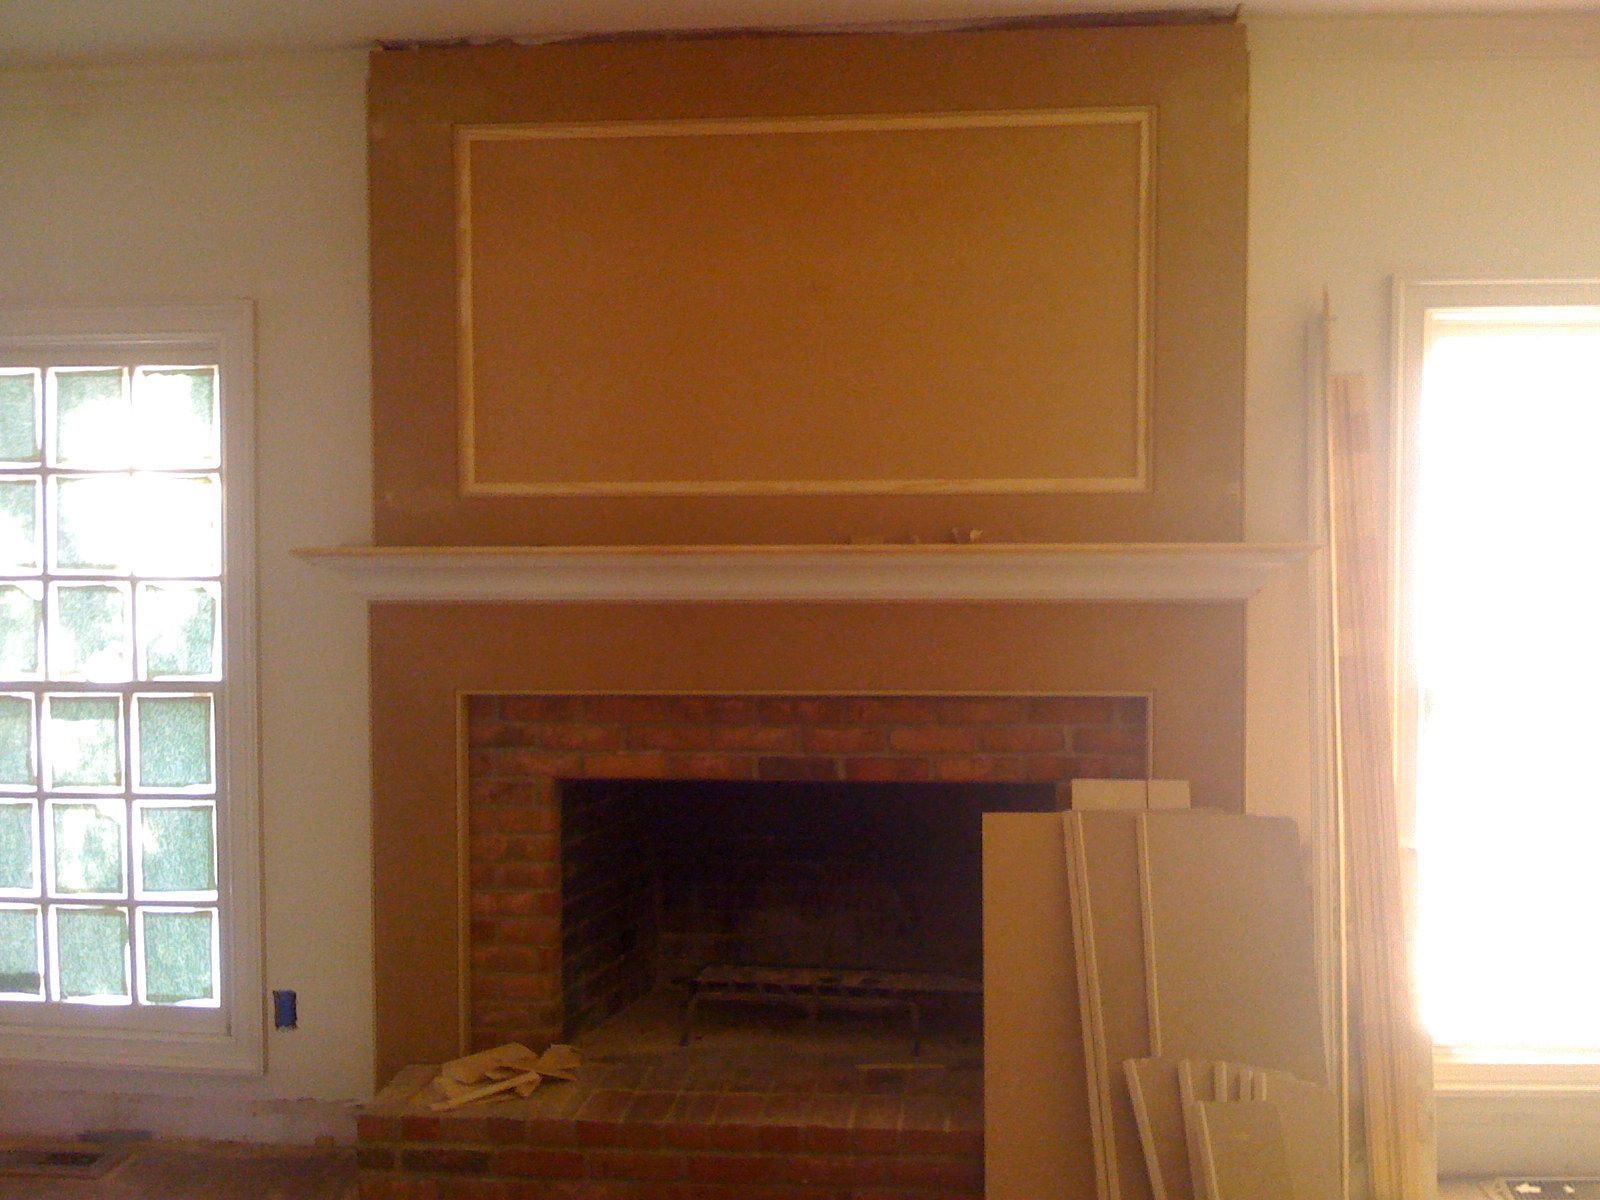 Cover The 80 39 S Brick Fireplace With Mdf And A Mantel